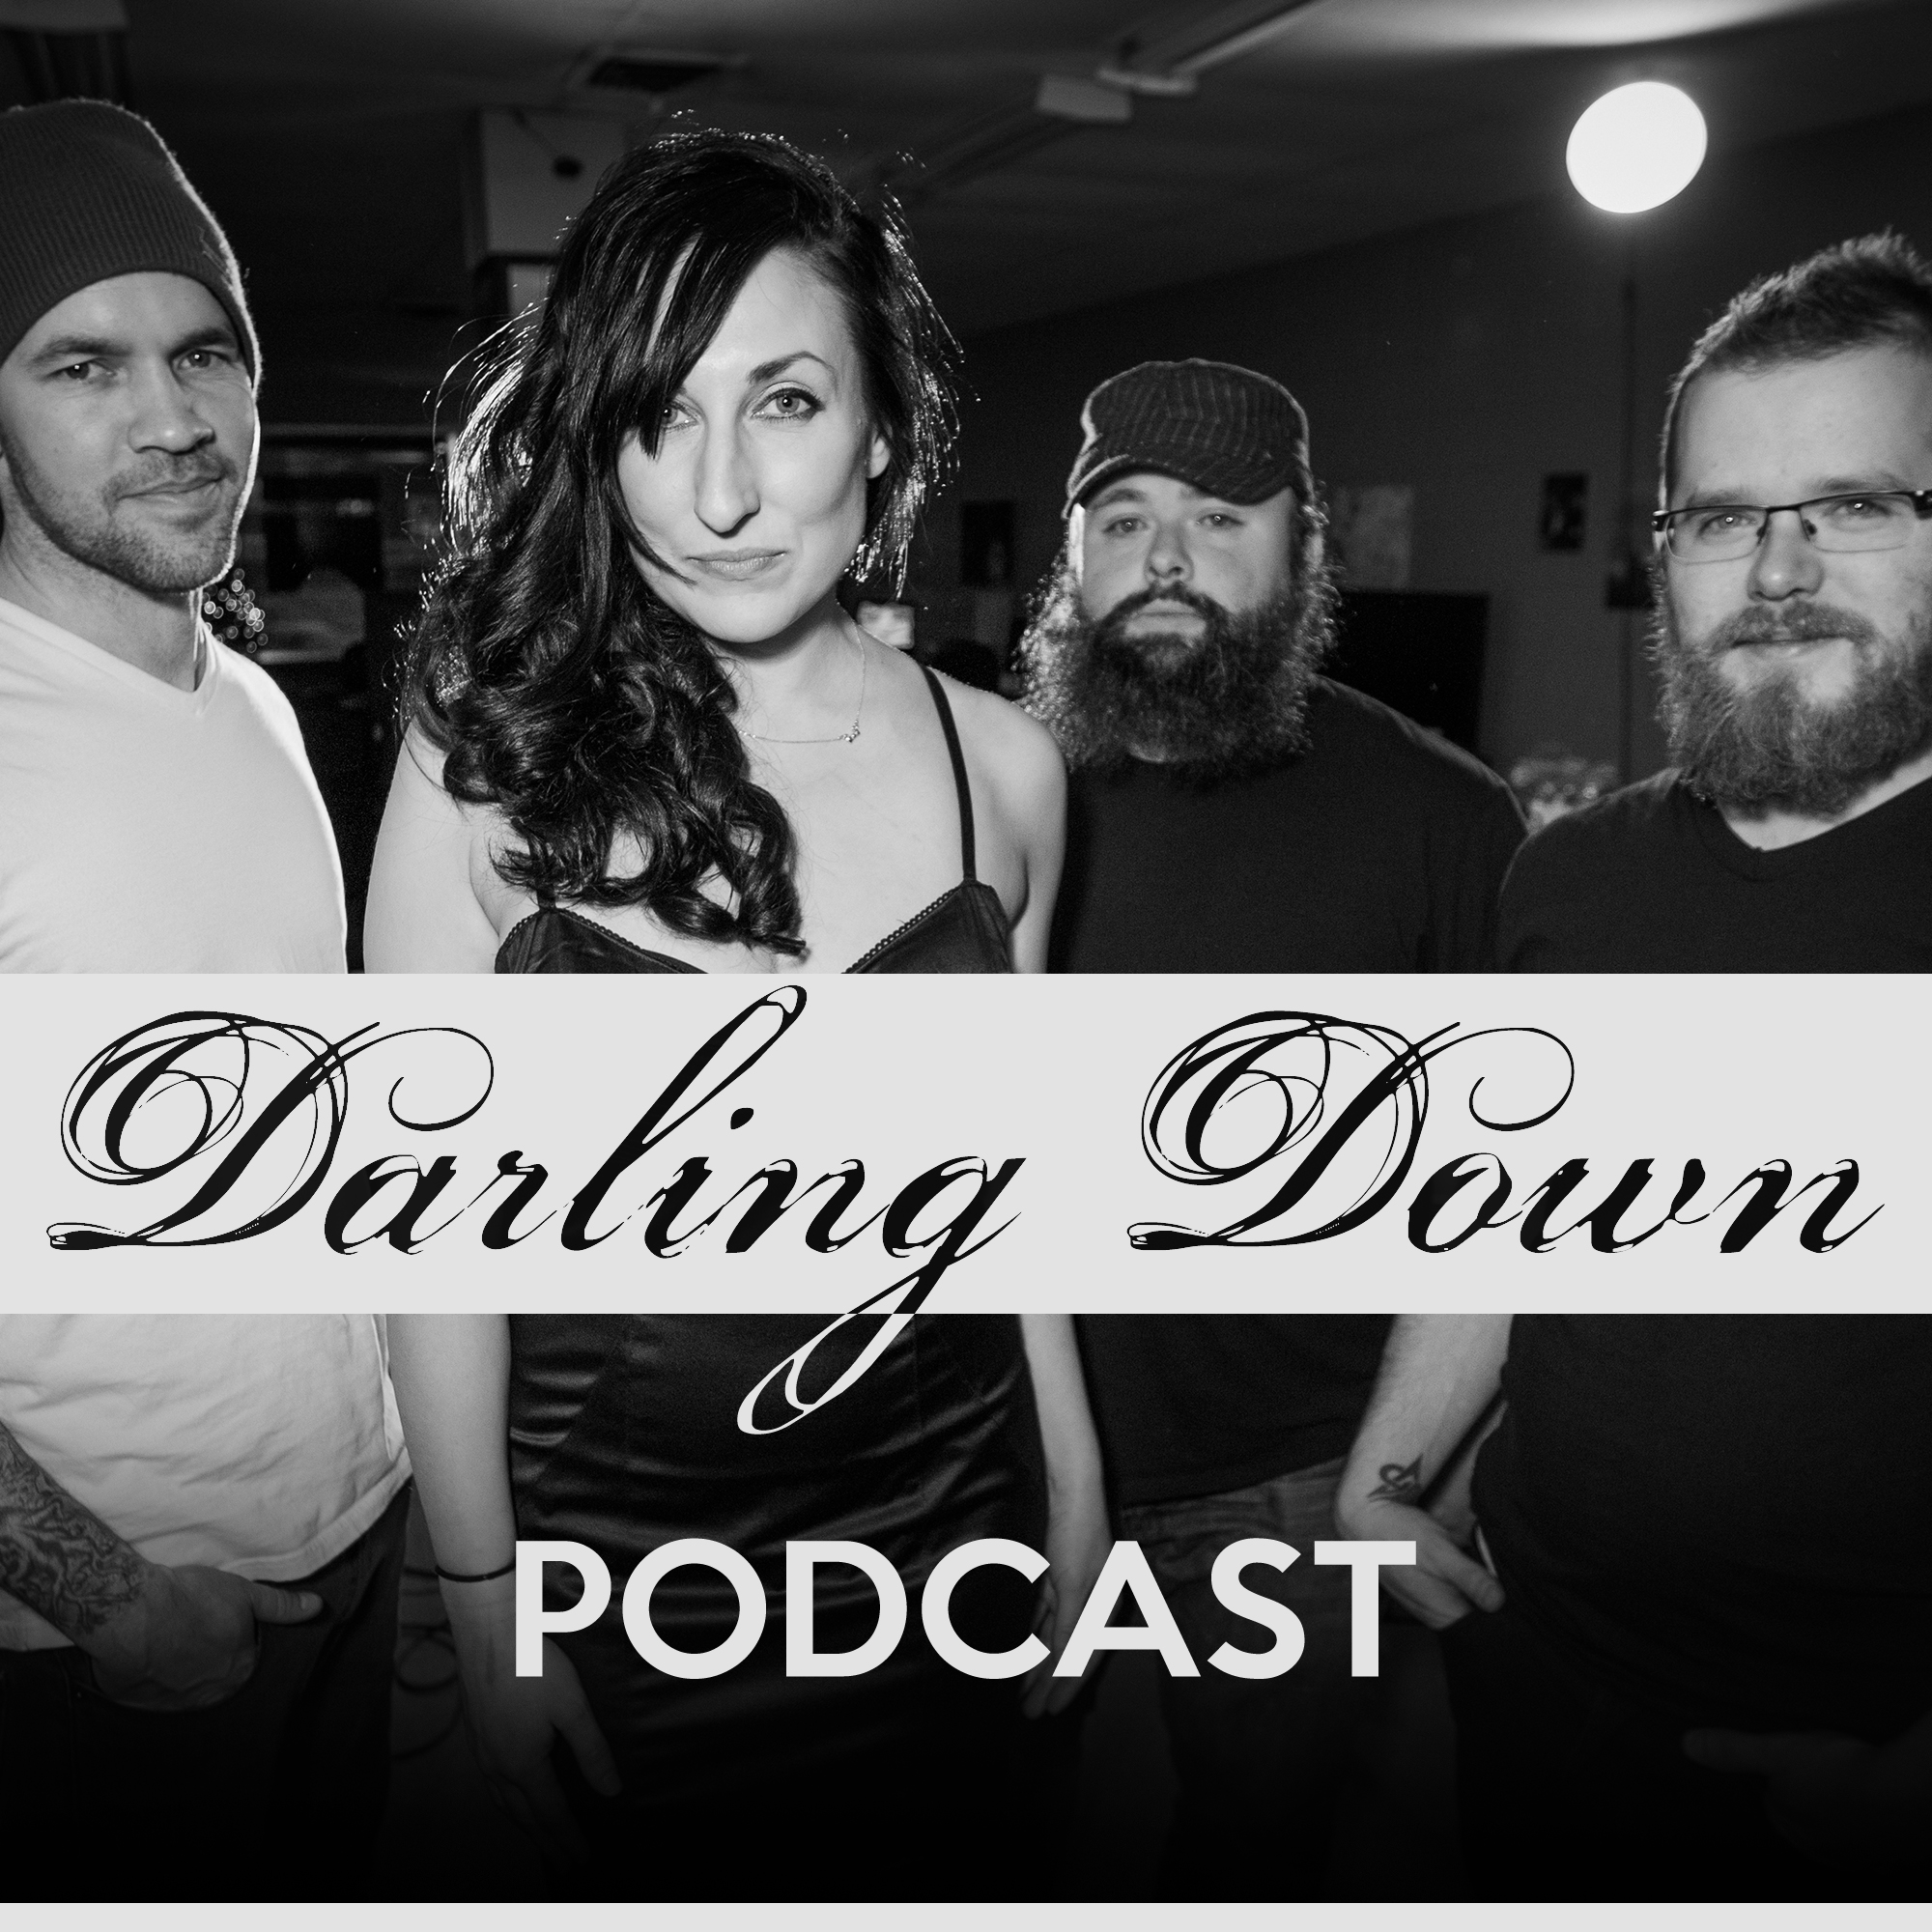 Darling Down Podcast